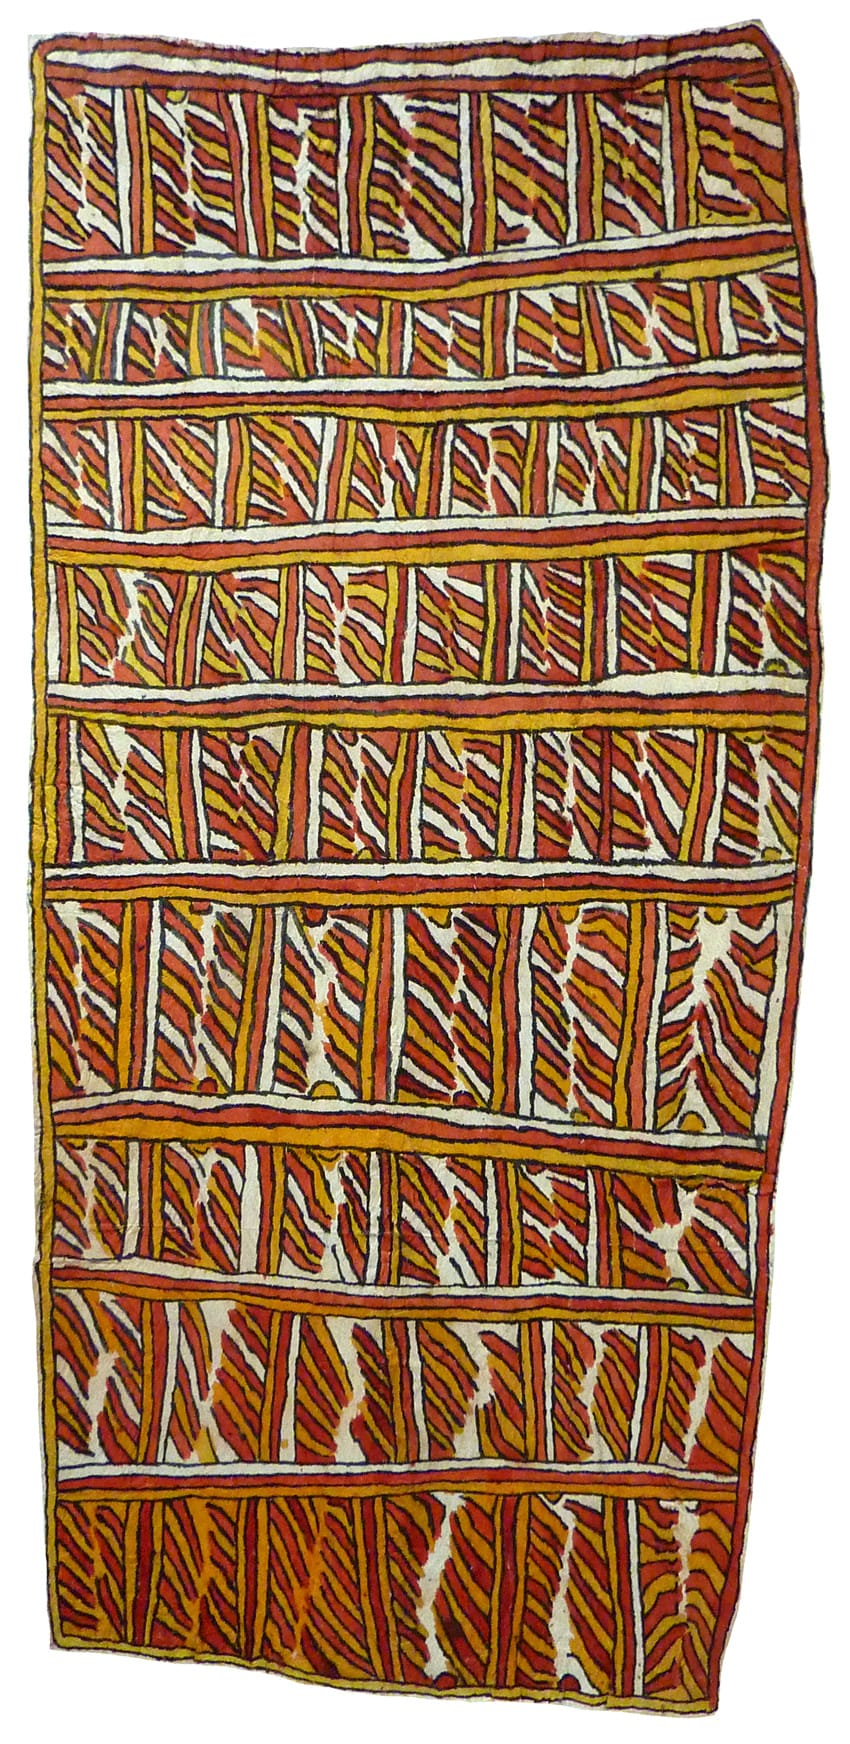 Audrey Masé Ani'emeh buri'eteh natural pigments on nioge (barkcloth) 140 x 66.5 cm